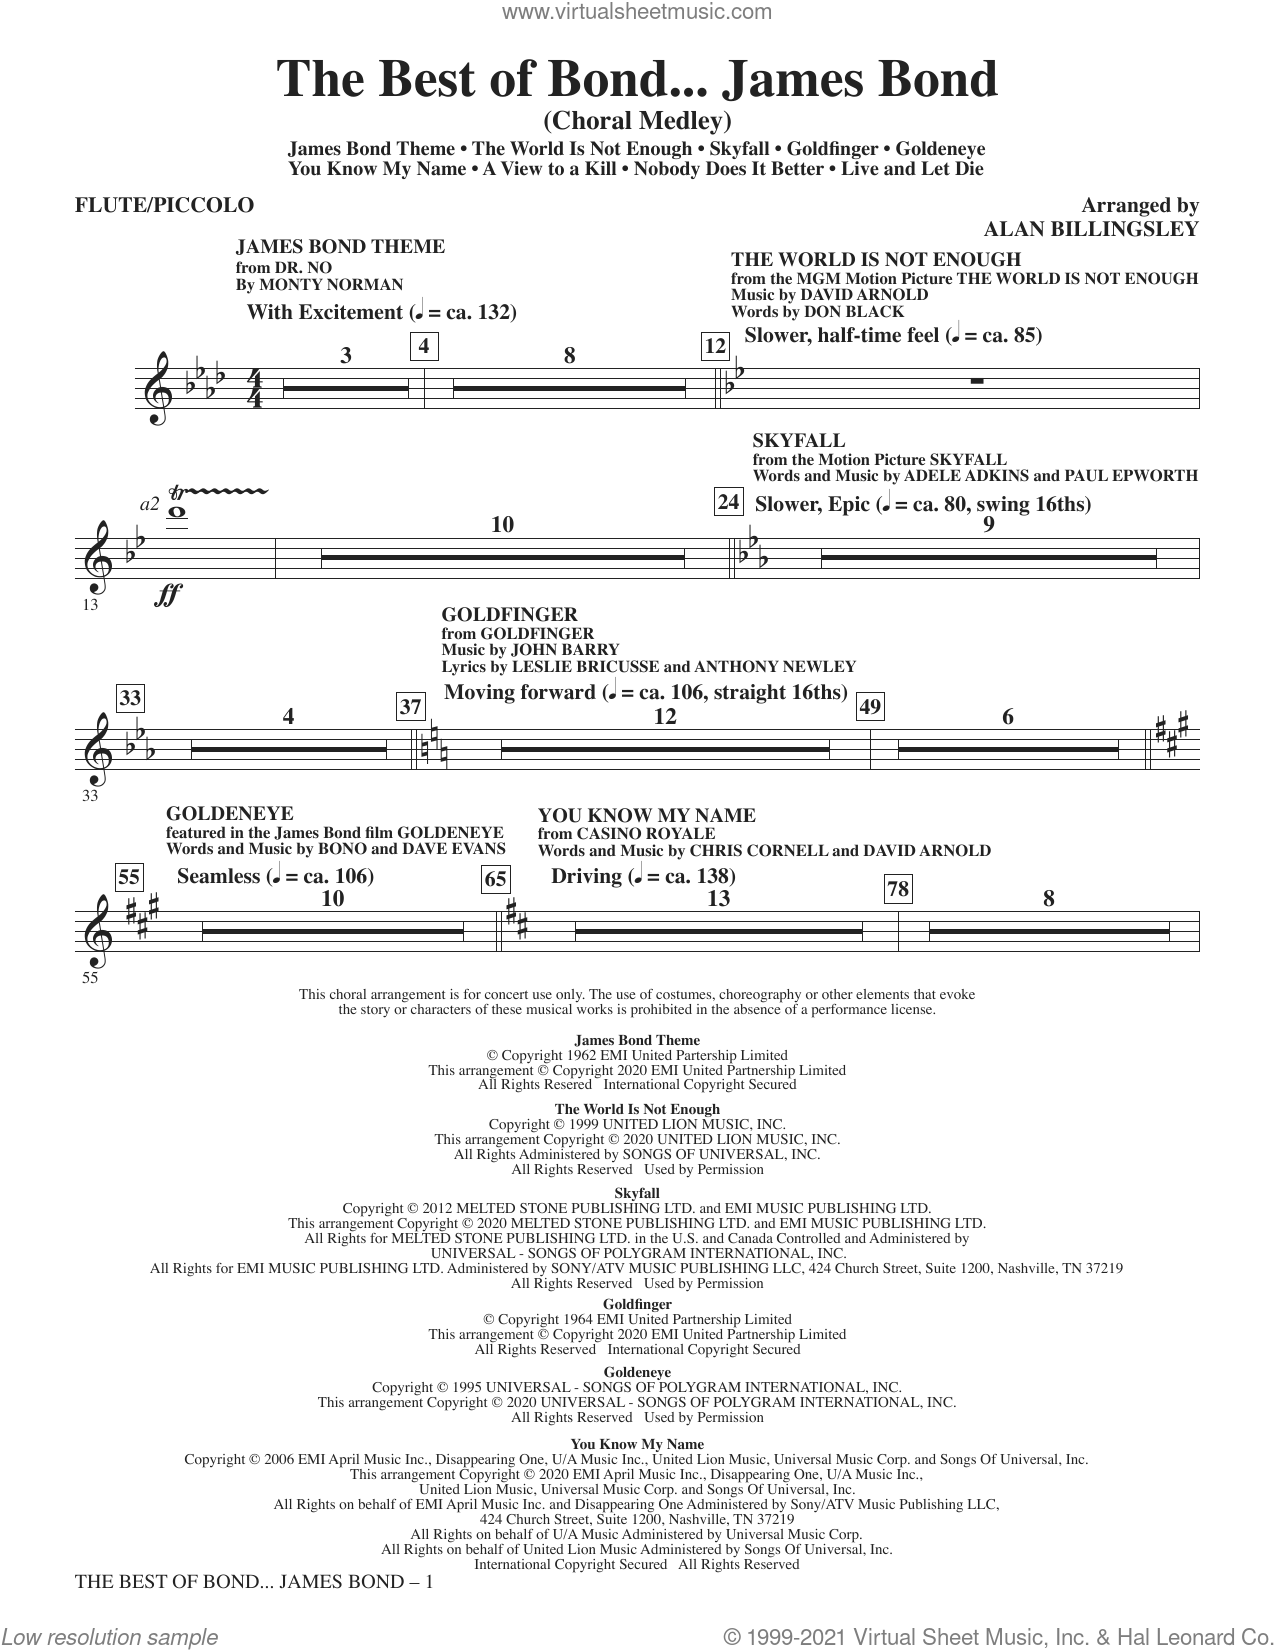 The Best Of Bond... James Bond (Choral Medley) (complete set of parts) sheet music for orchestra/band by Alan Billingsley, intermediate skill level